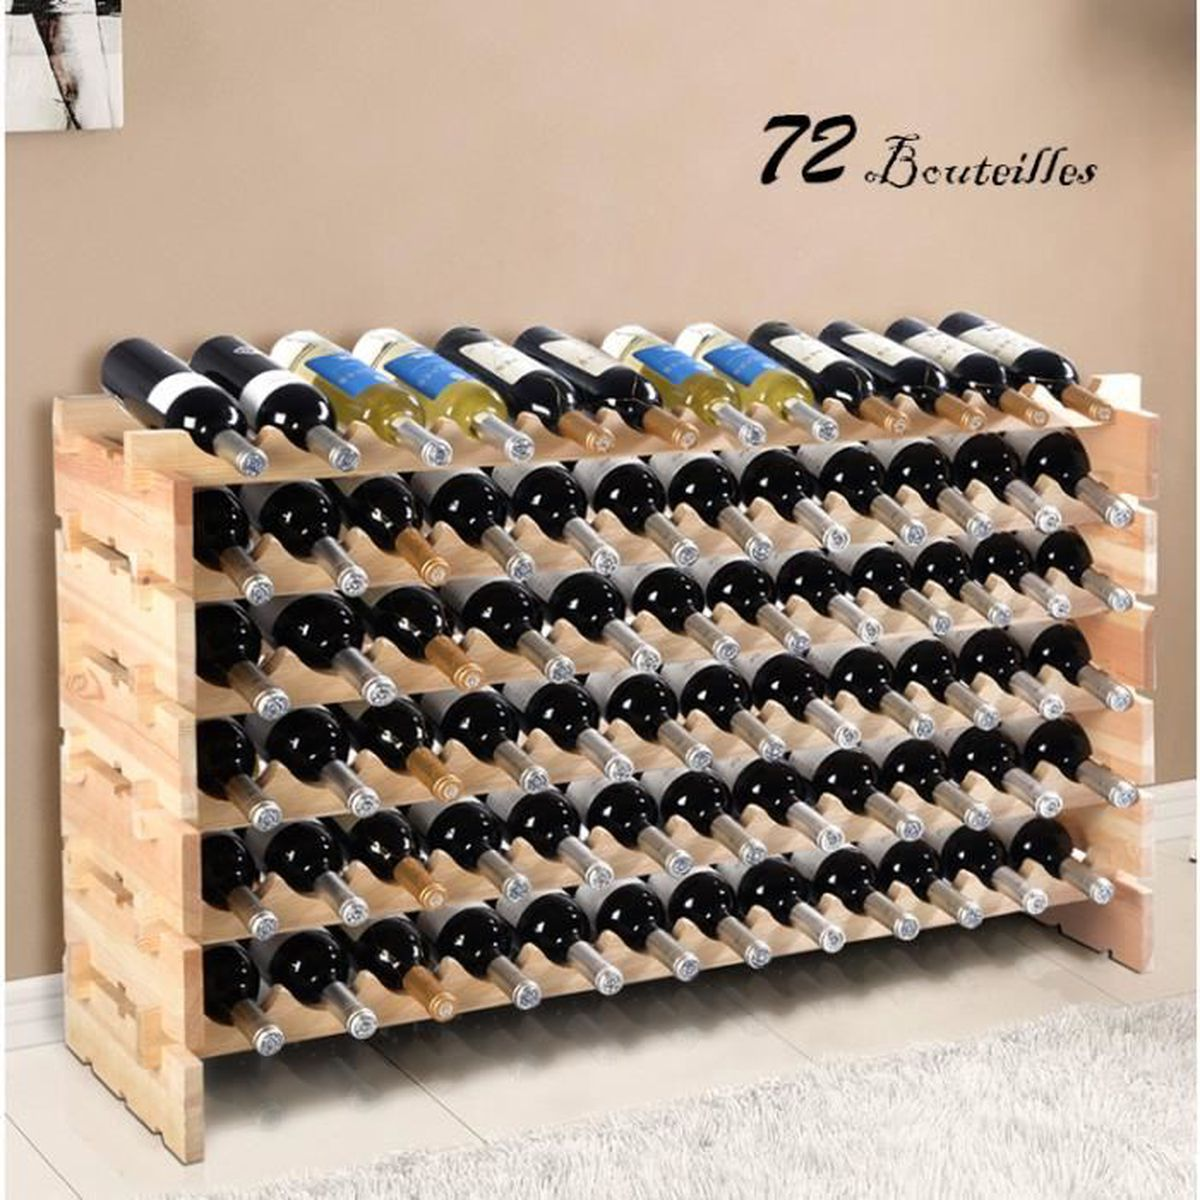 tag re vin casier vin porte bouteille 72 bouteilles support range bouteille achat vente. Black Bedroom Furniture Sets. Home Design Ideas